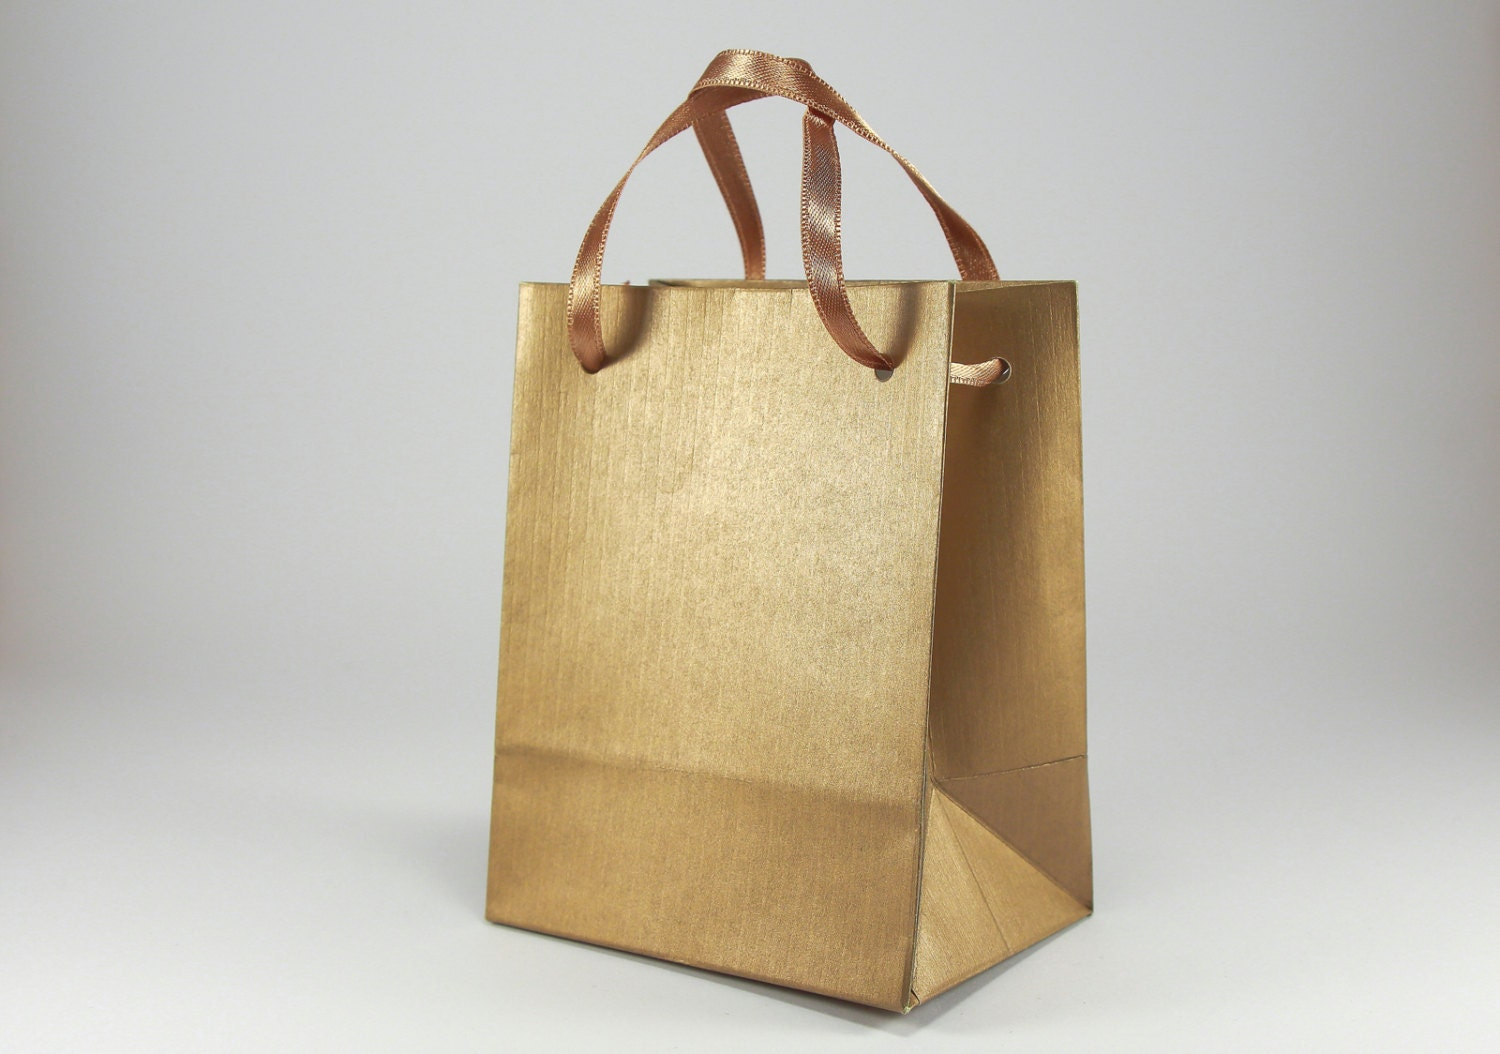 10 Extra Small Gift Bags Handmade Of Gold Ribbed Paper With Satin